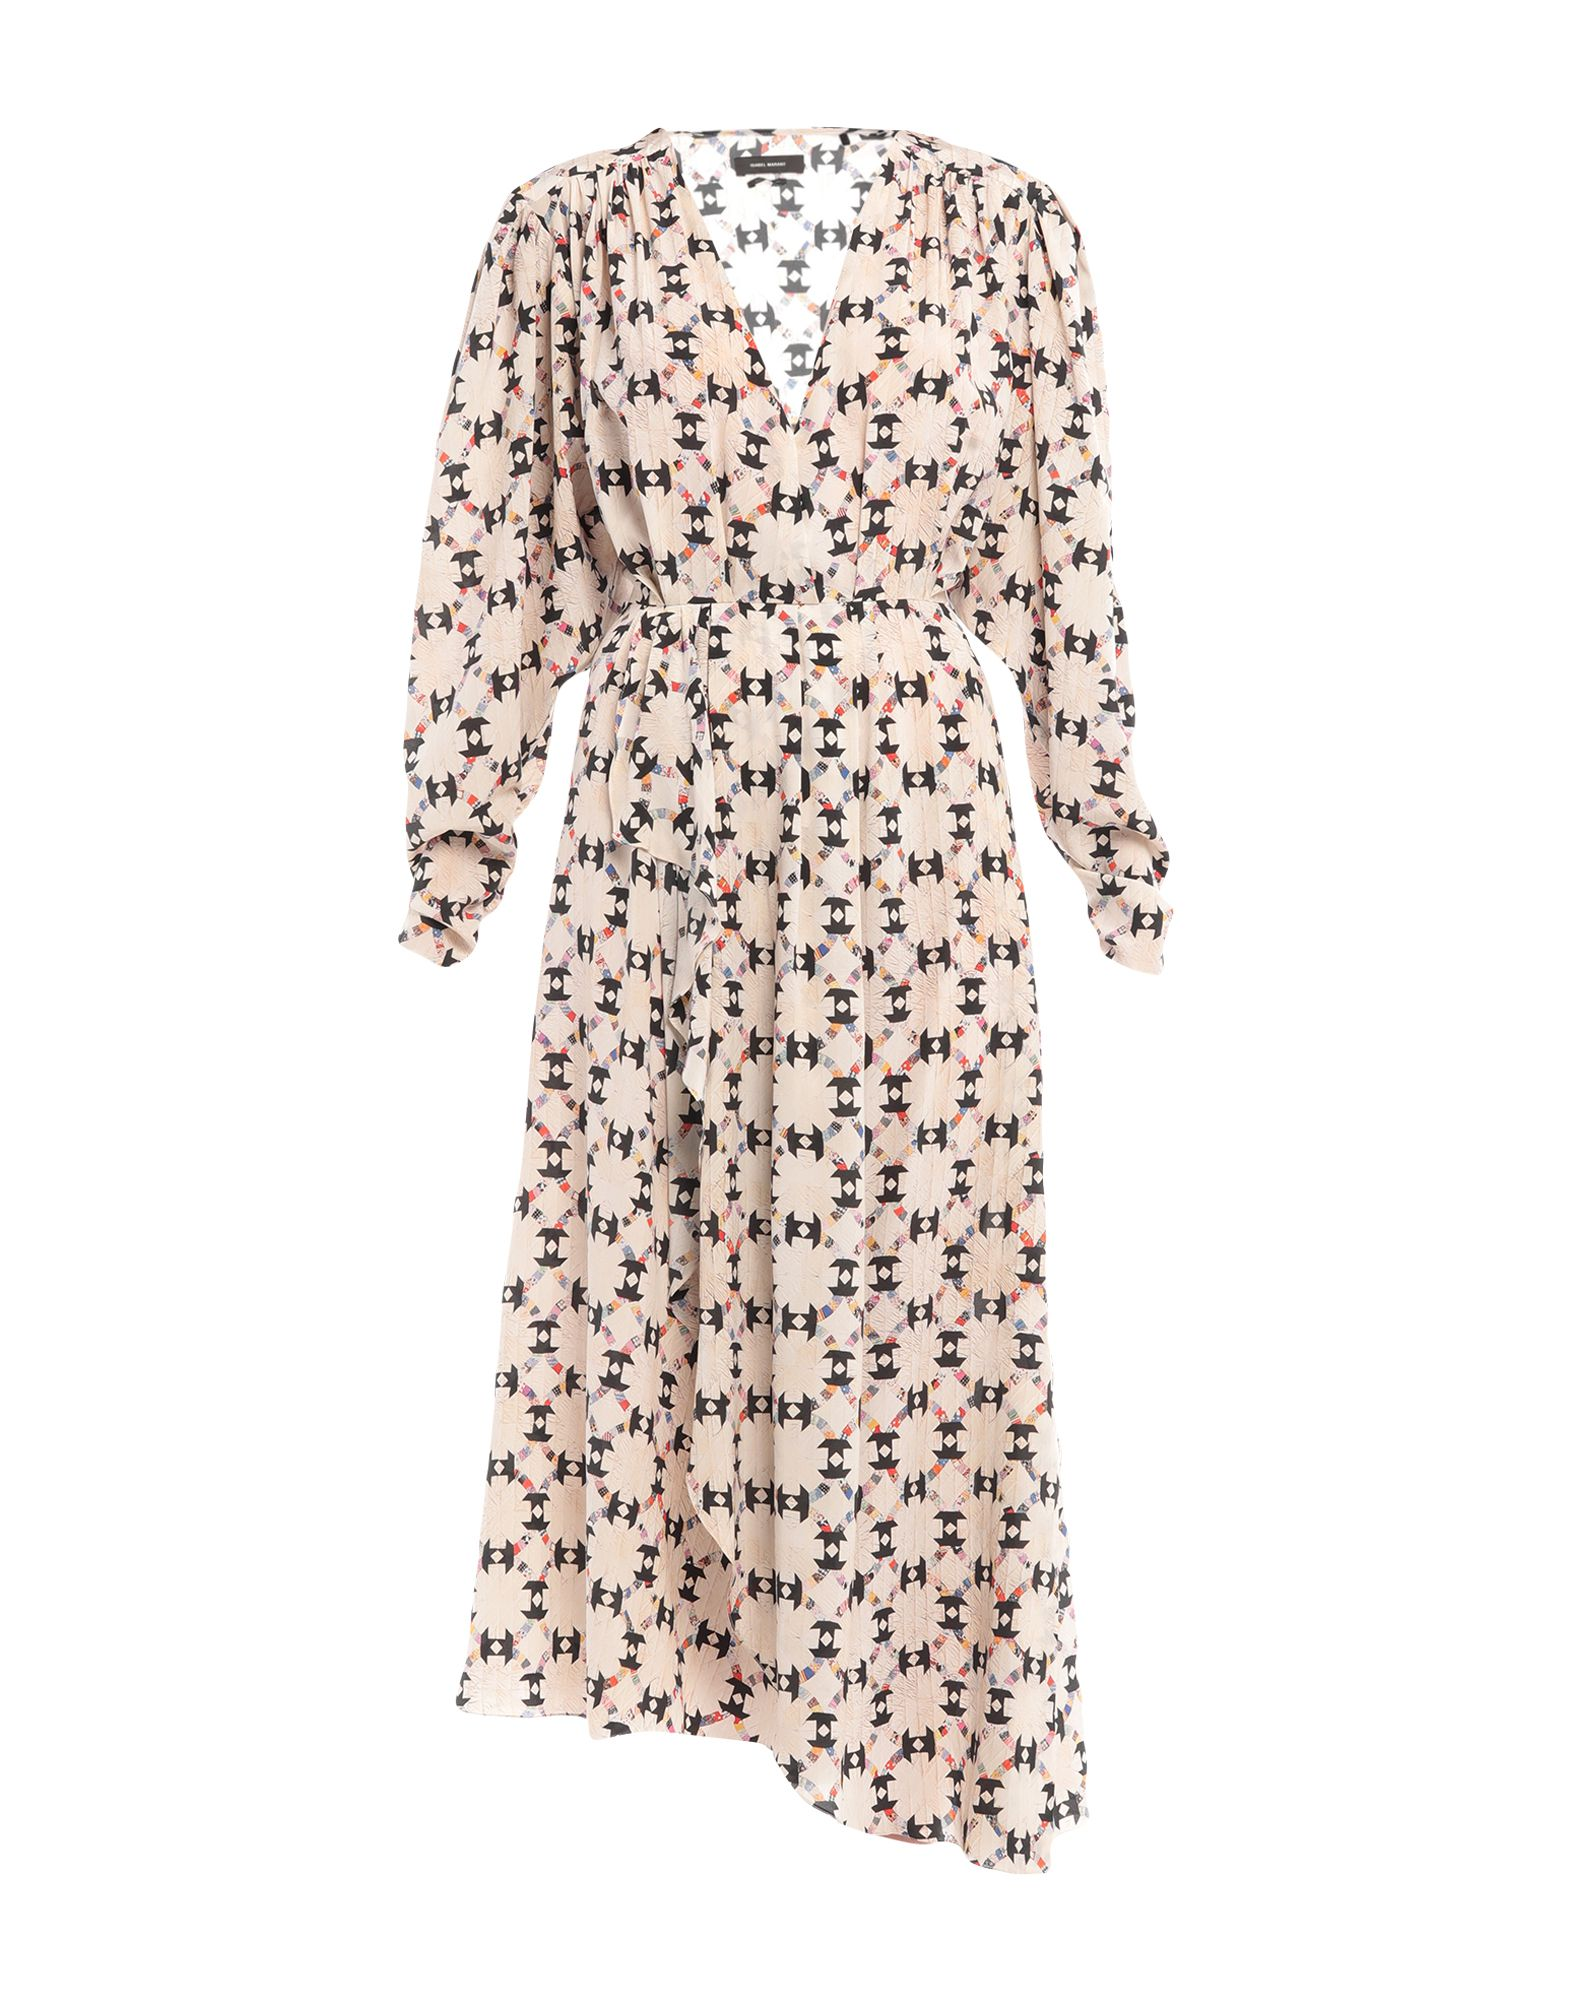 ISABEL MARANT Long dresses. crepe, folds, ruffles, geometric design, v-neck, long sleeves, no pockets, side closure, zipper closure, unlined, stretch. 91% Silk, 9% Elastane